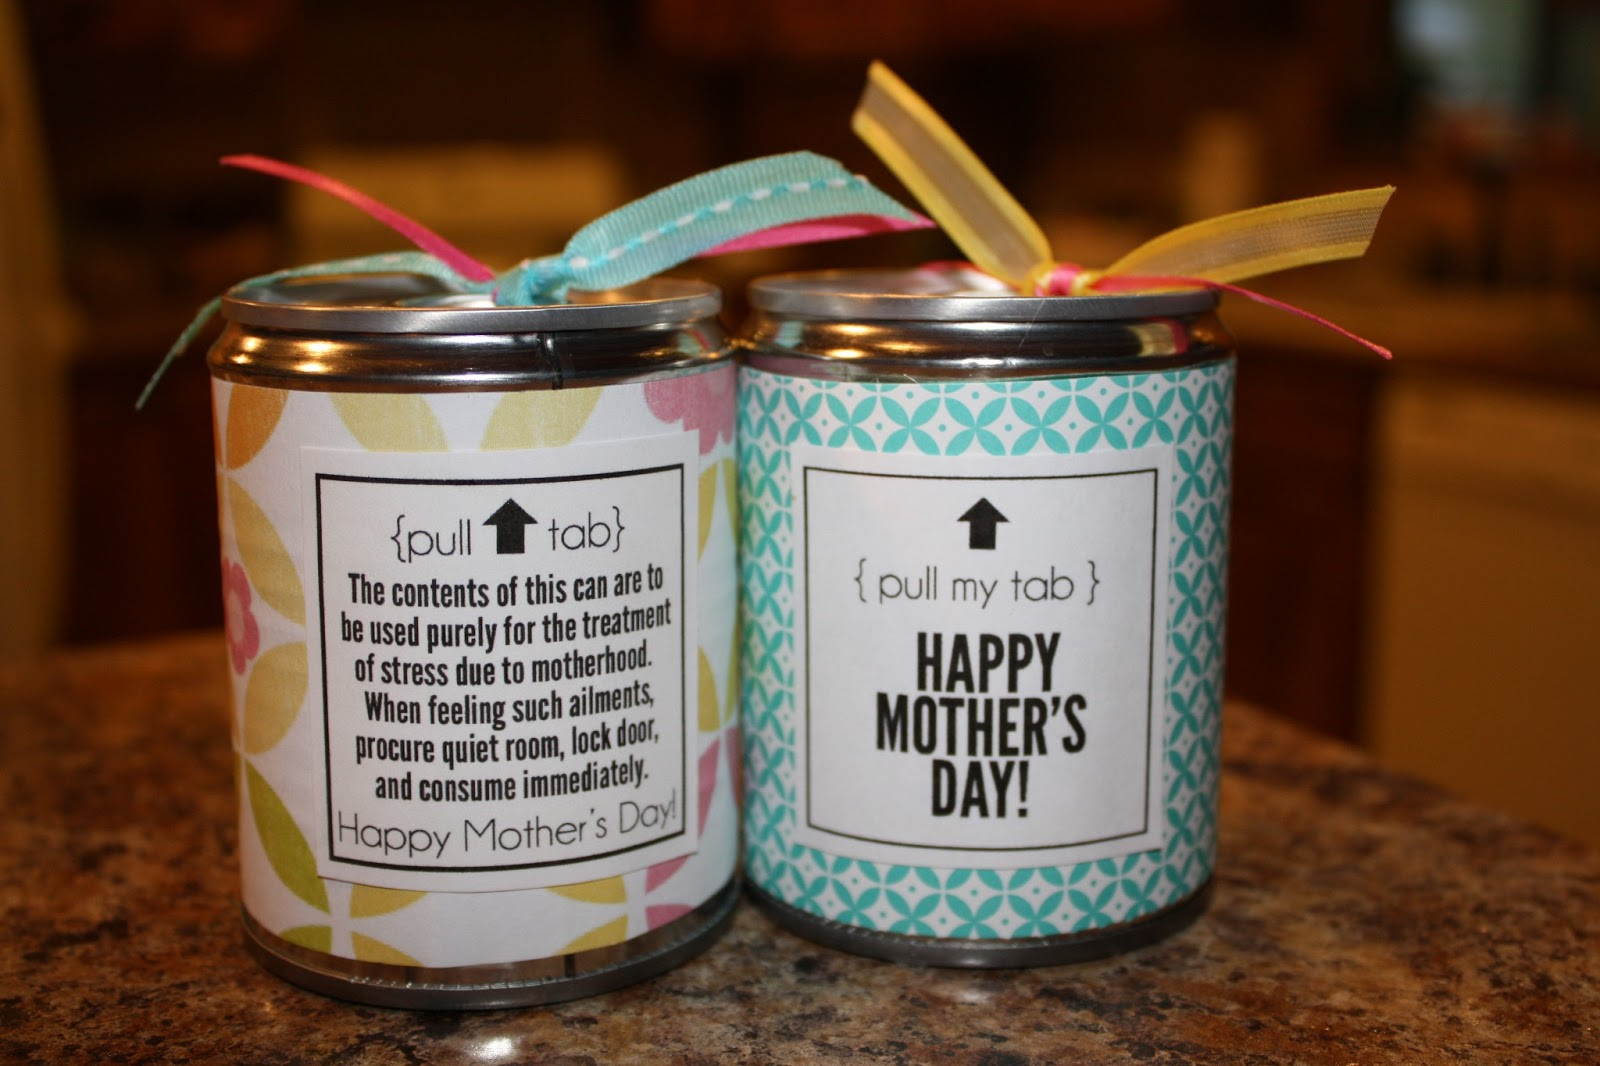 pinterest and the pauper!: simple mother's day gift ideas!